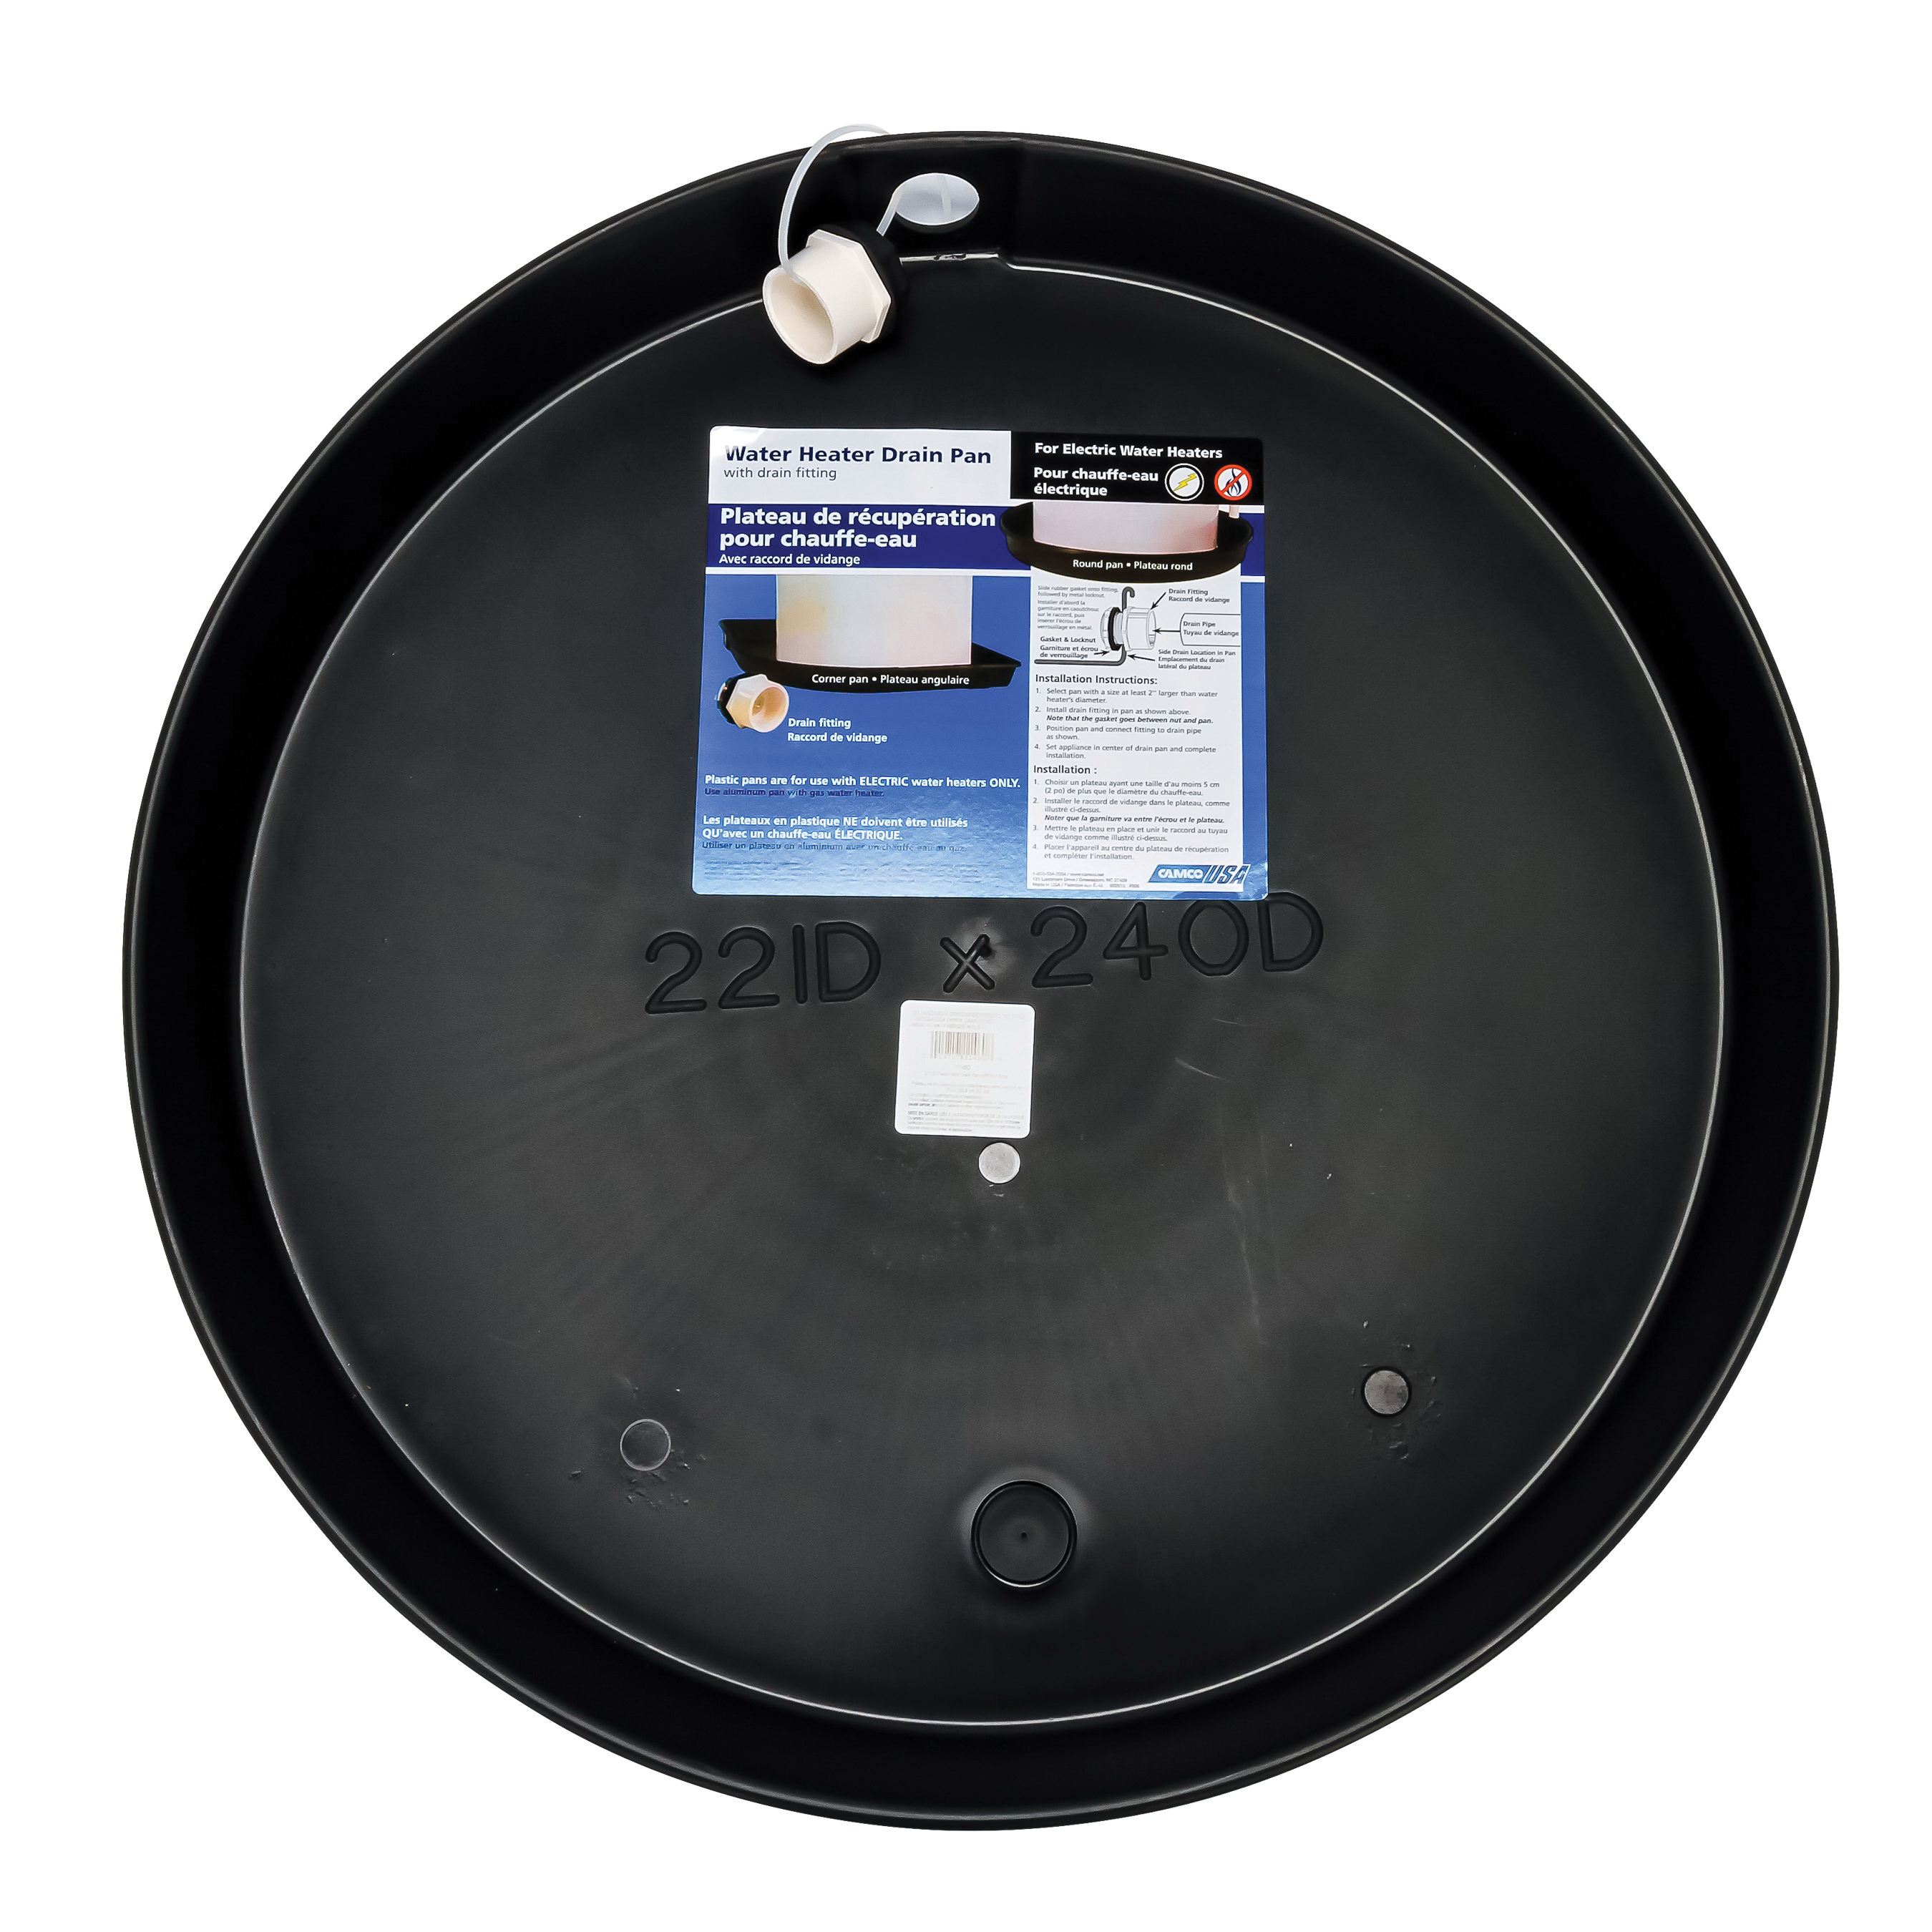 Camco 11460 Round Drain Pan, For Use With Electric Water Heater, Plastic, Domestic